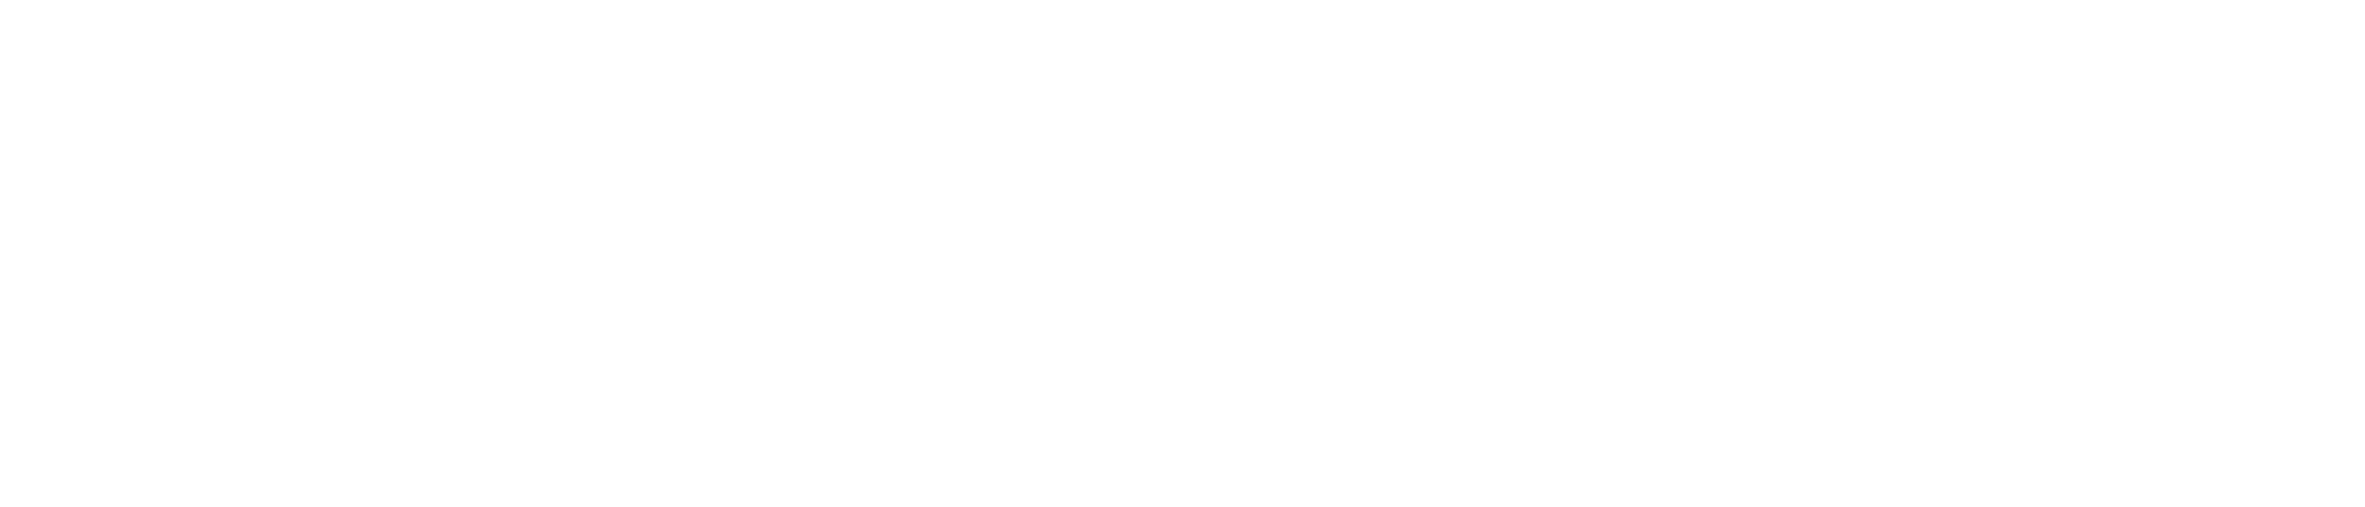 Marc Williams Heating Engineers - South Manchester and Cheshire Plumber